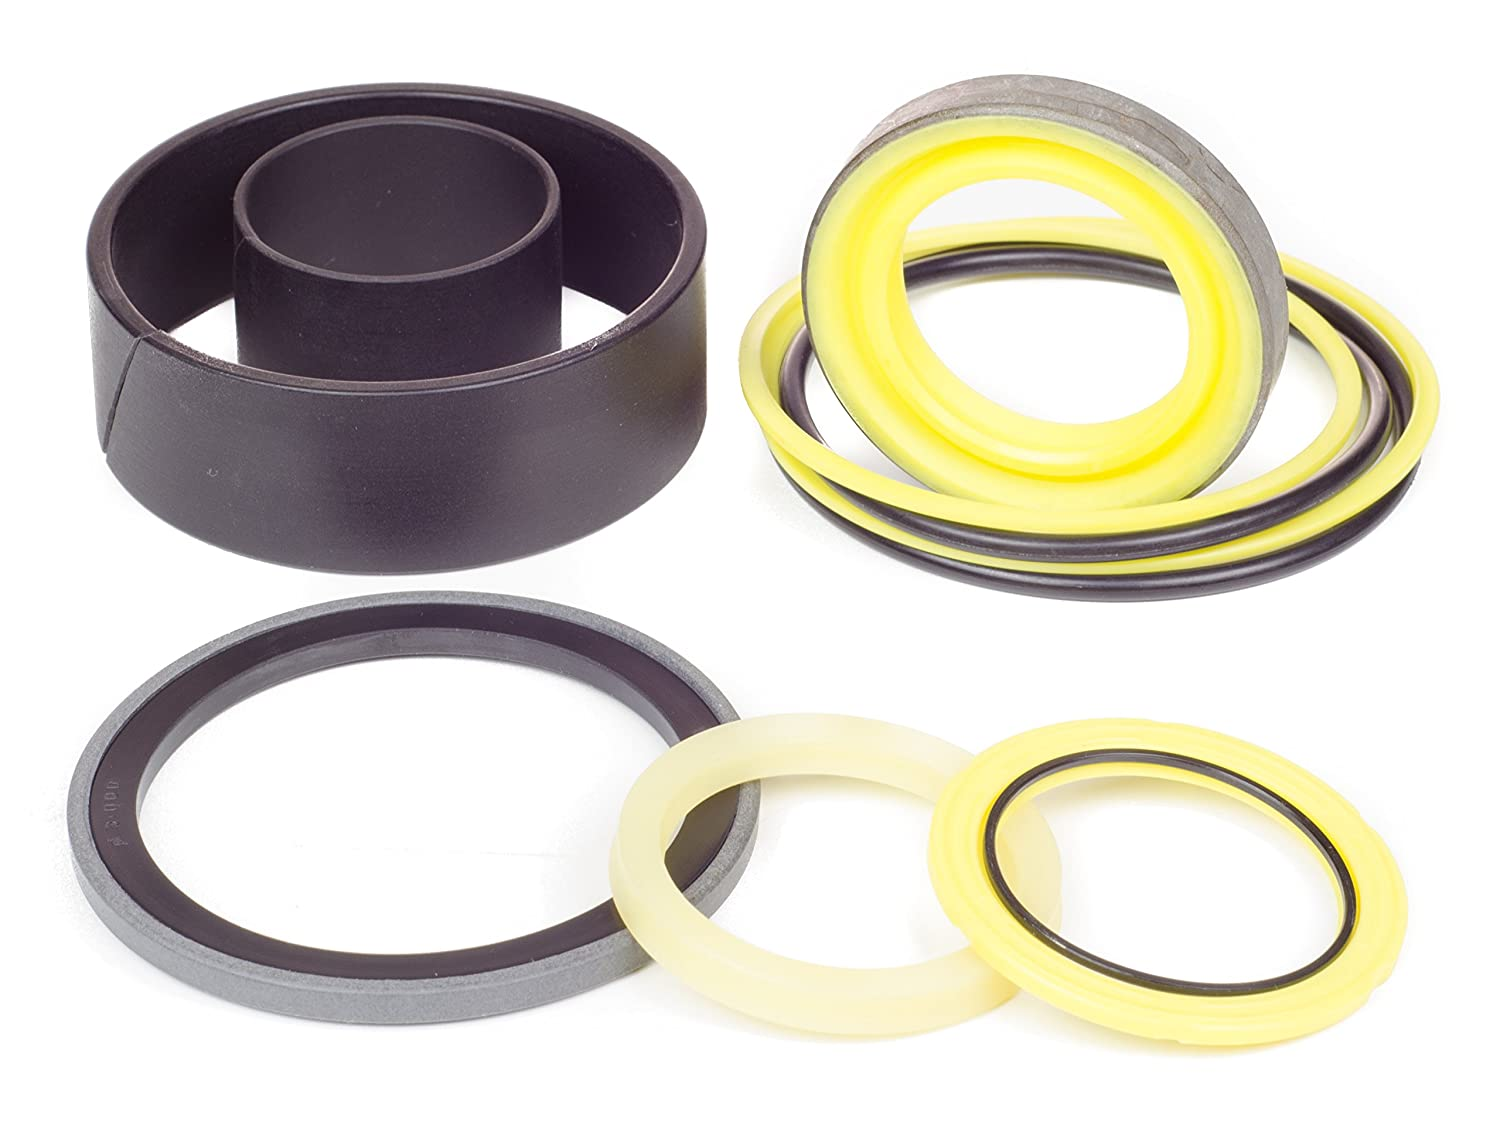 CAT Caterpillar 2350354 Aftermarket Hydraulic Cylinder Seal Kit by Kit King USA